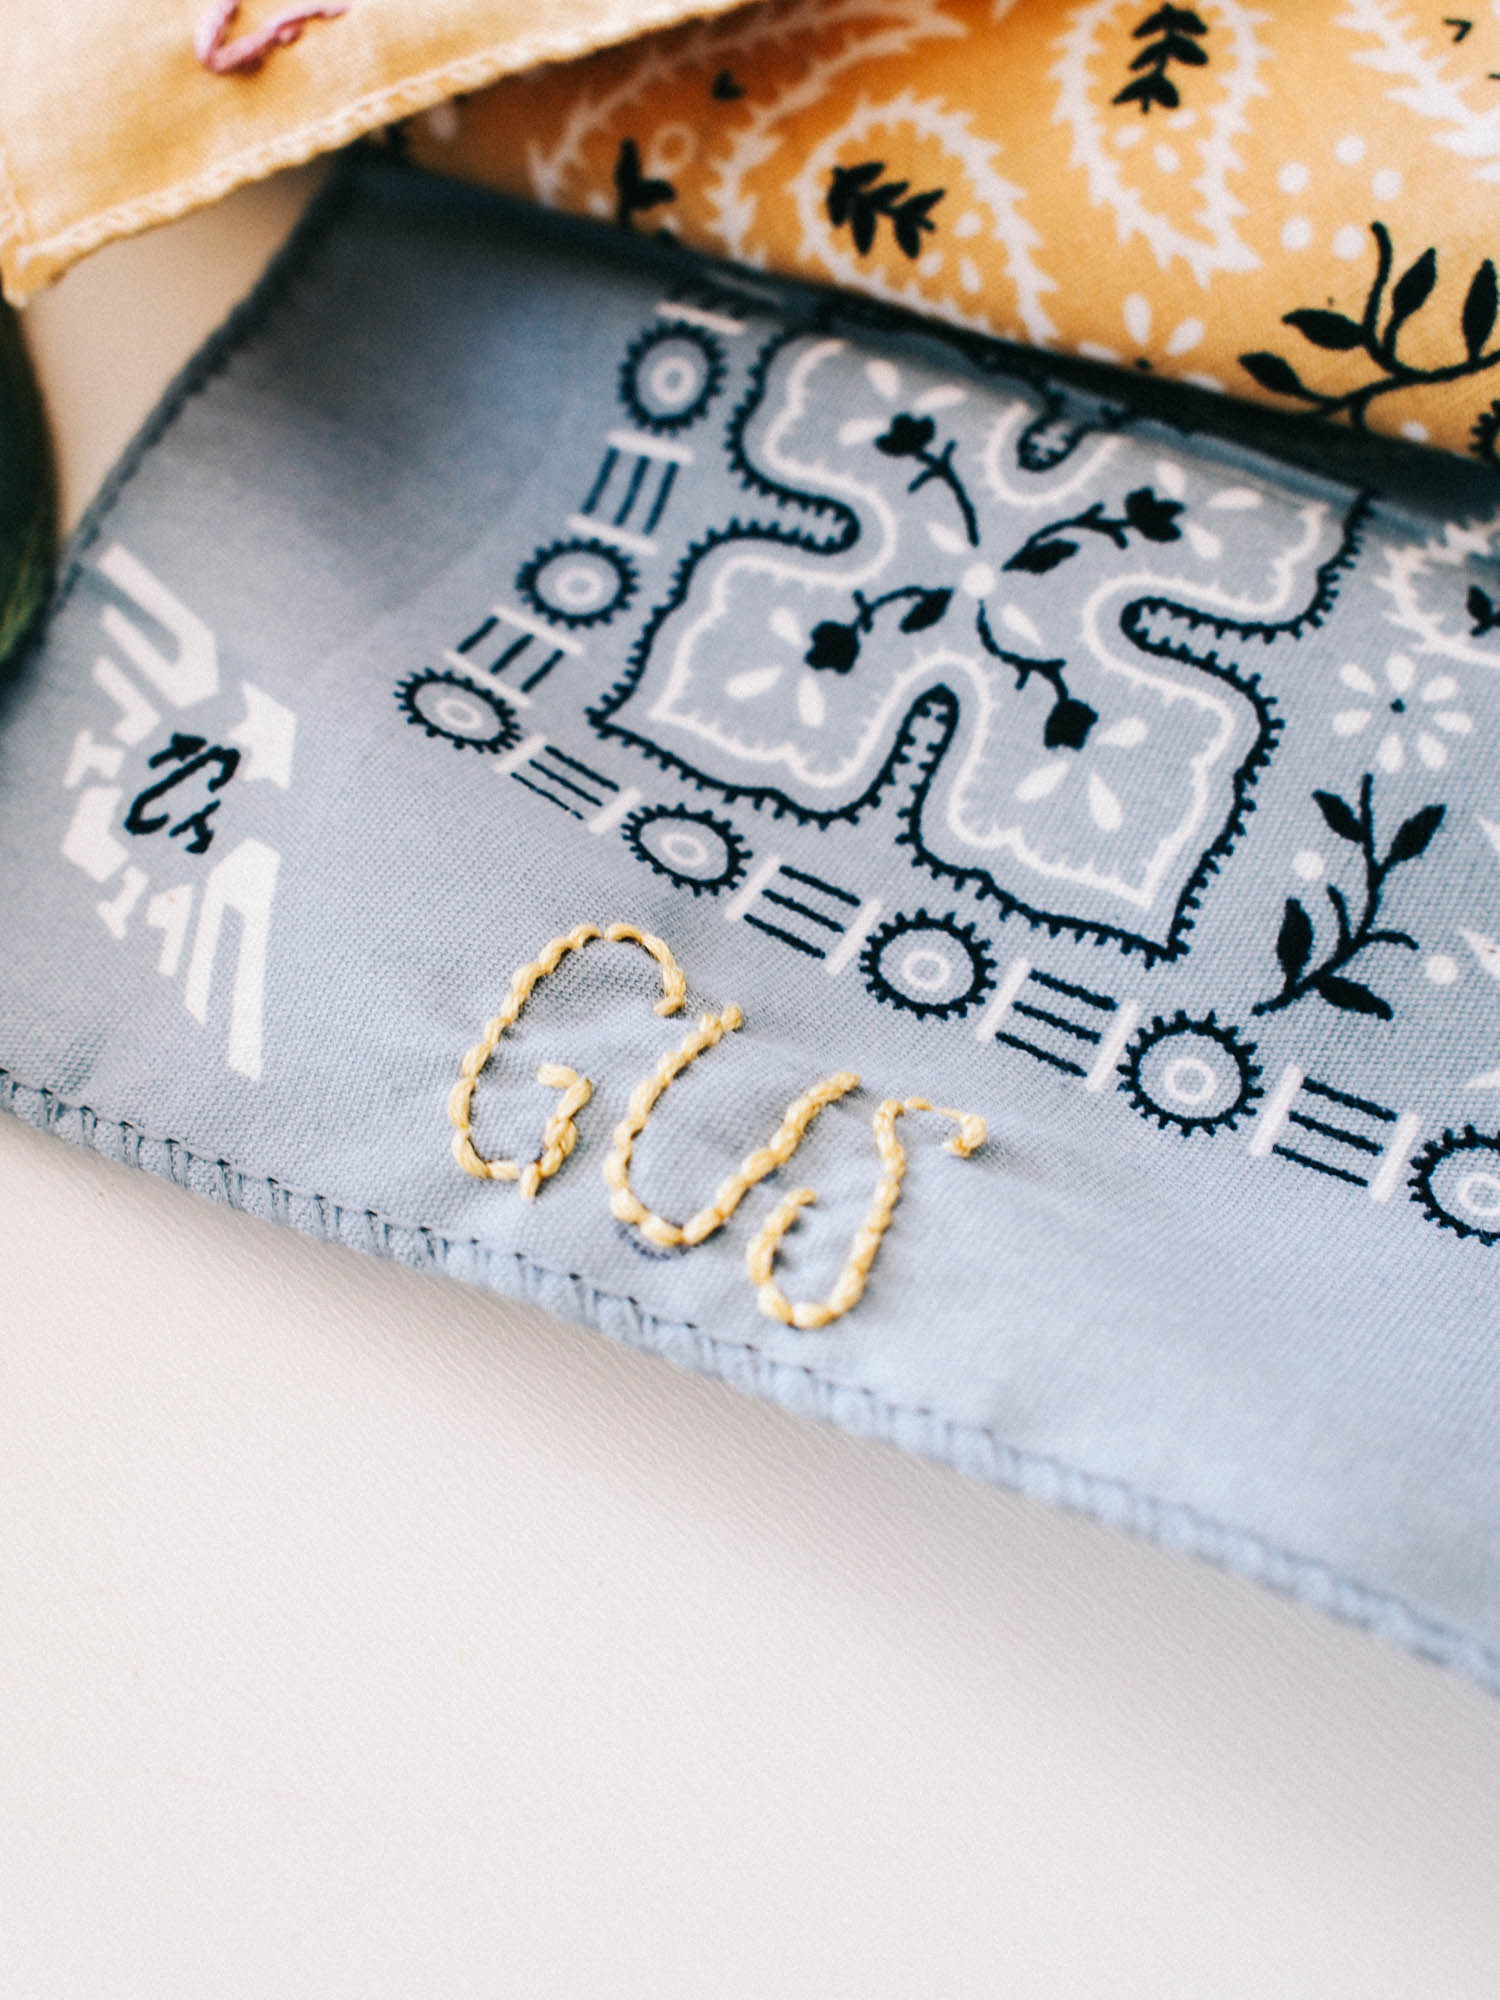 Hand Embroidered Handkerchief | A Fabulous Fete